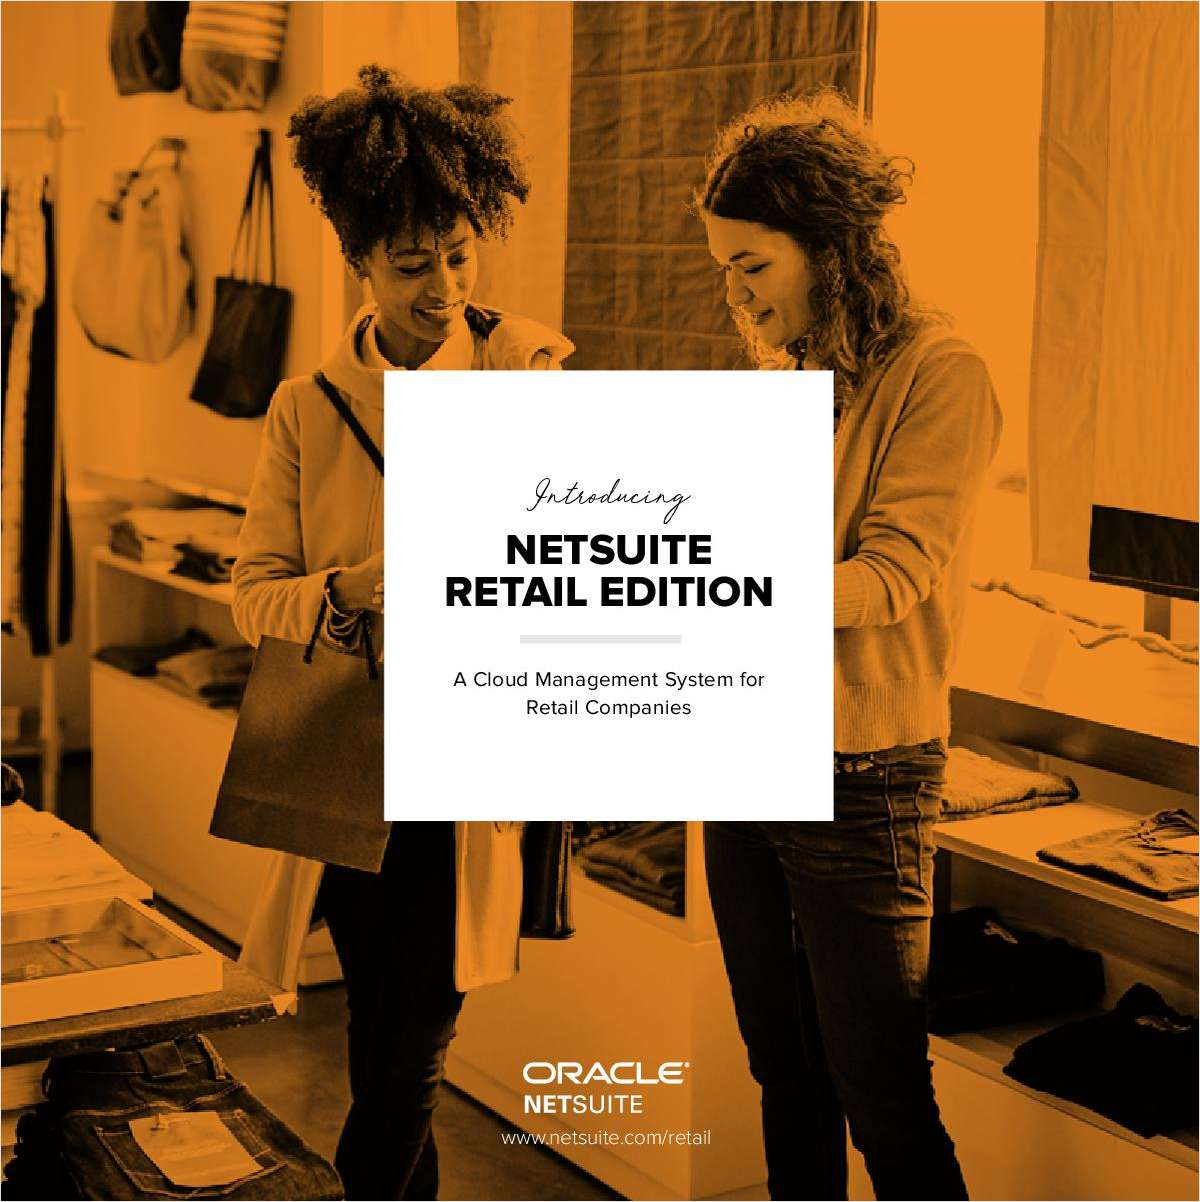 NetSuite Retail Edition: A Cloud Management System for Retail Companies